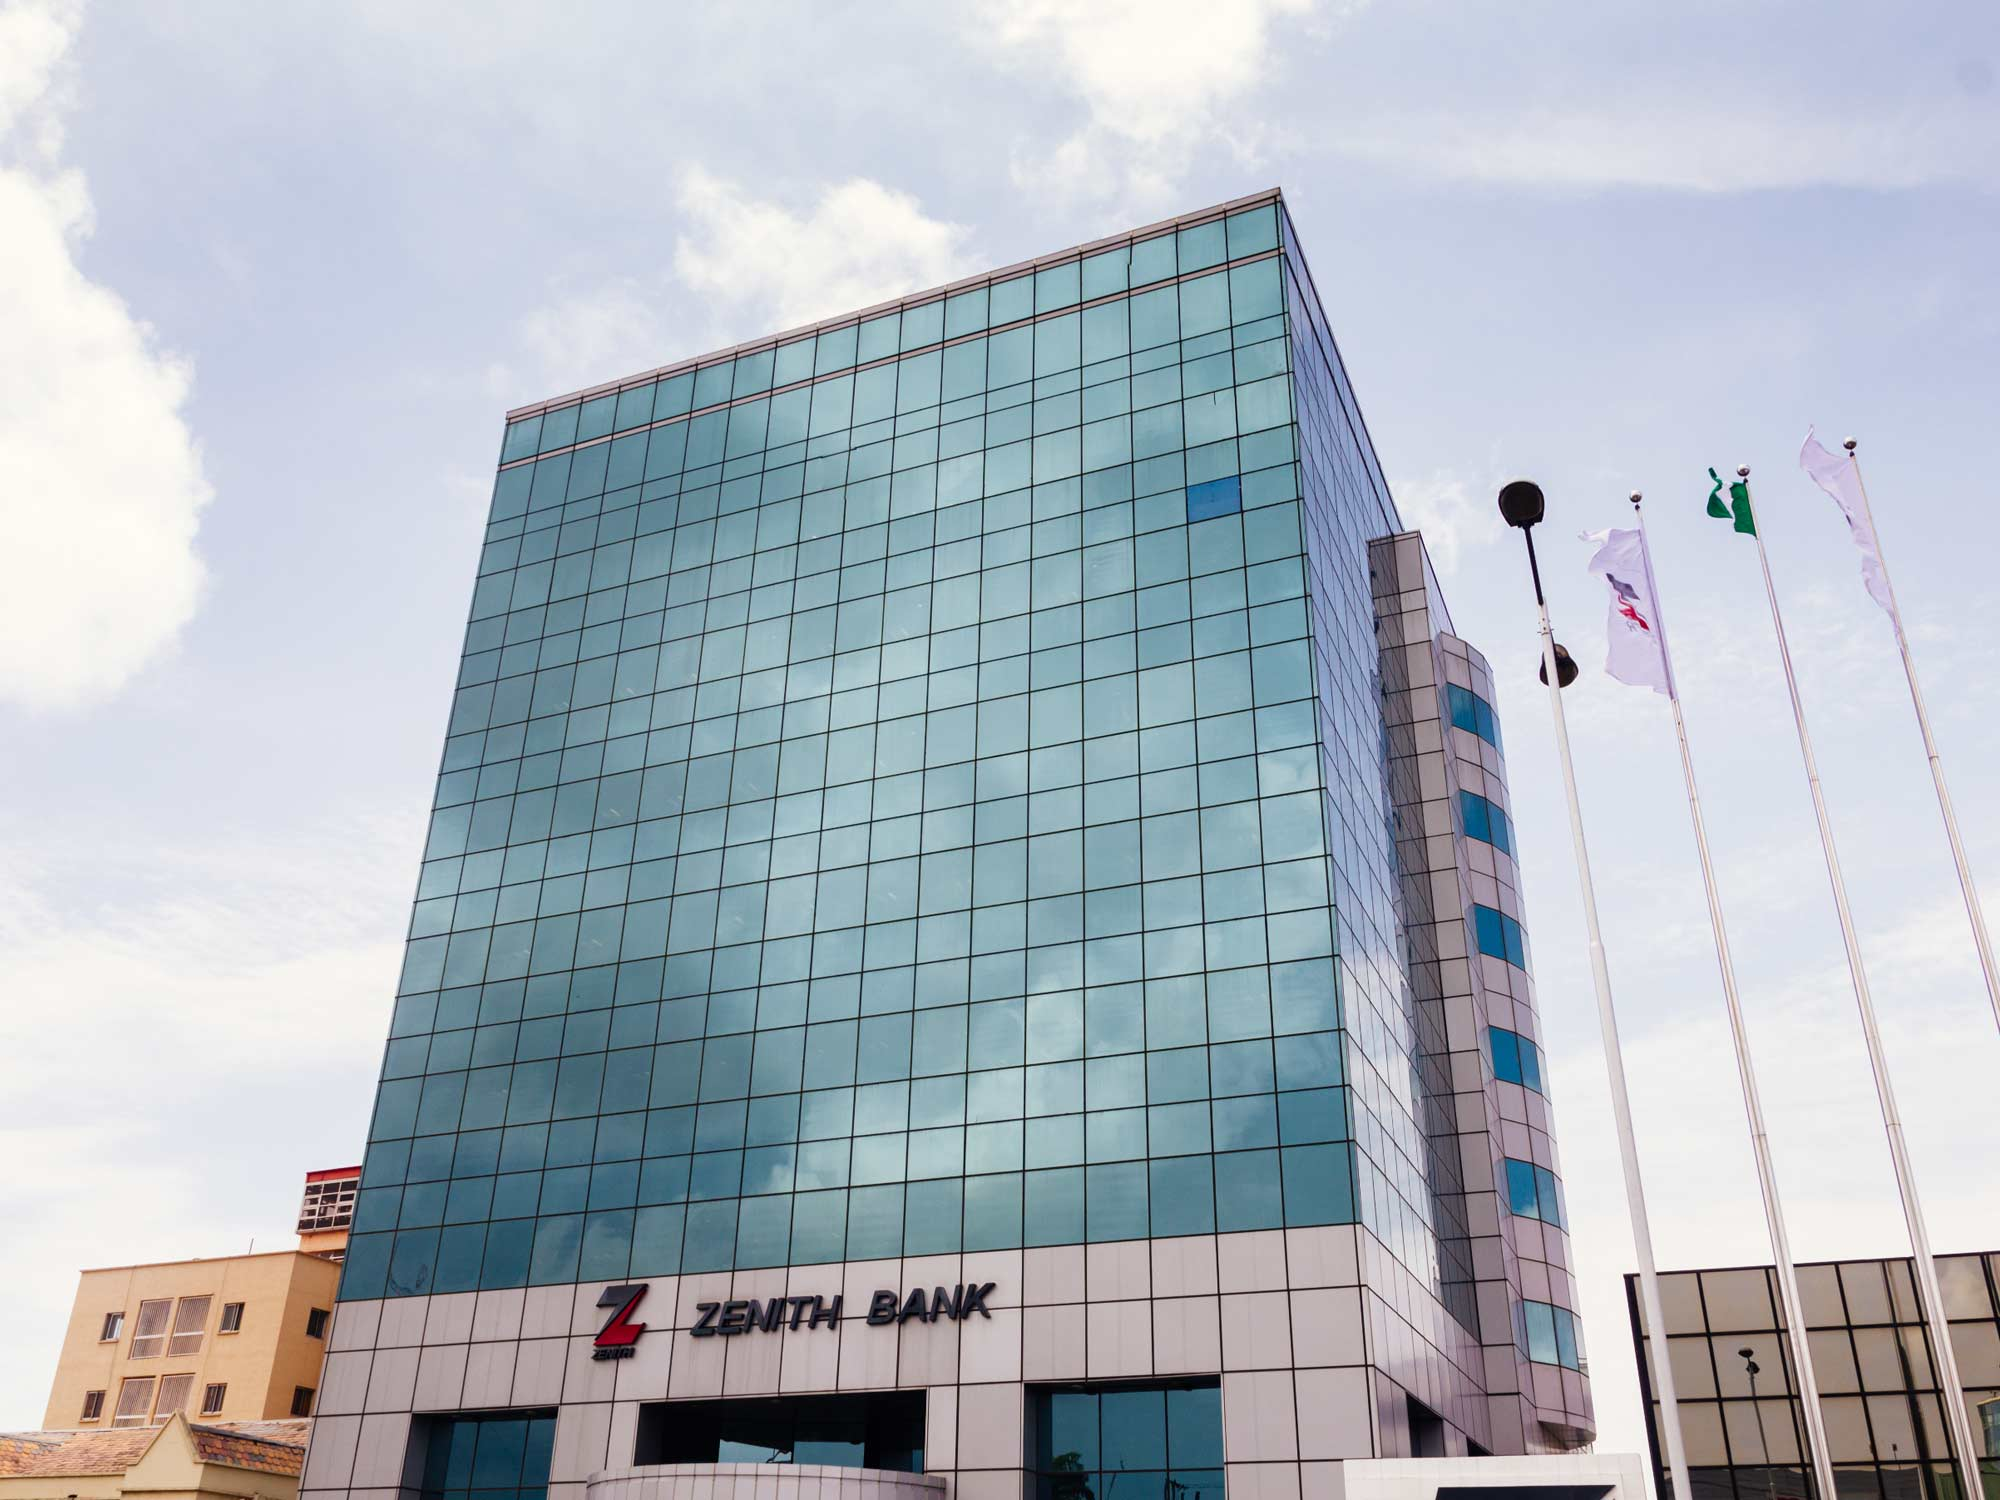 Zenith Bank Plc on Thursday declared gross earnings of N346 billion for the half year ended June 30, 2020. This is contained in the bank's audited results presented to the Nigerian Stock Exchange. The gross earnings represent an increase of four per cent when compared with N332 billion posted in the comparative period of 2019. […]